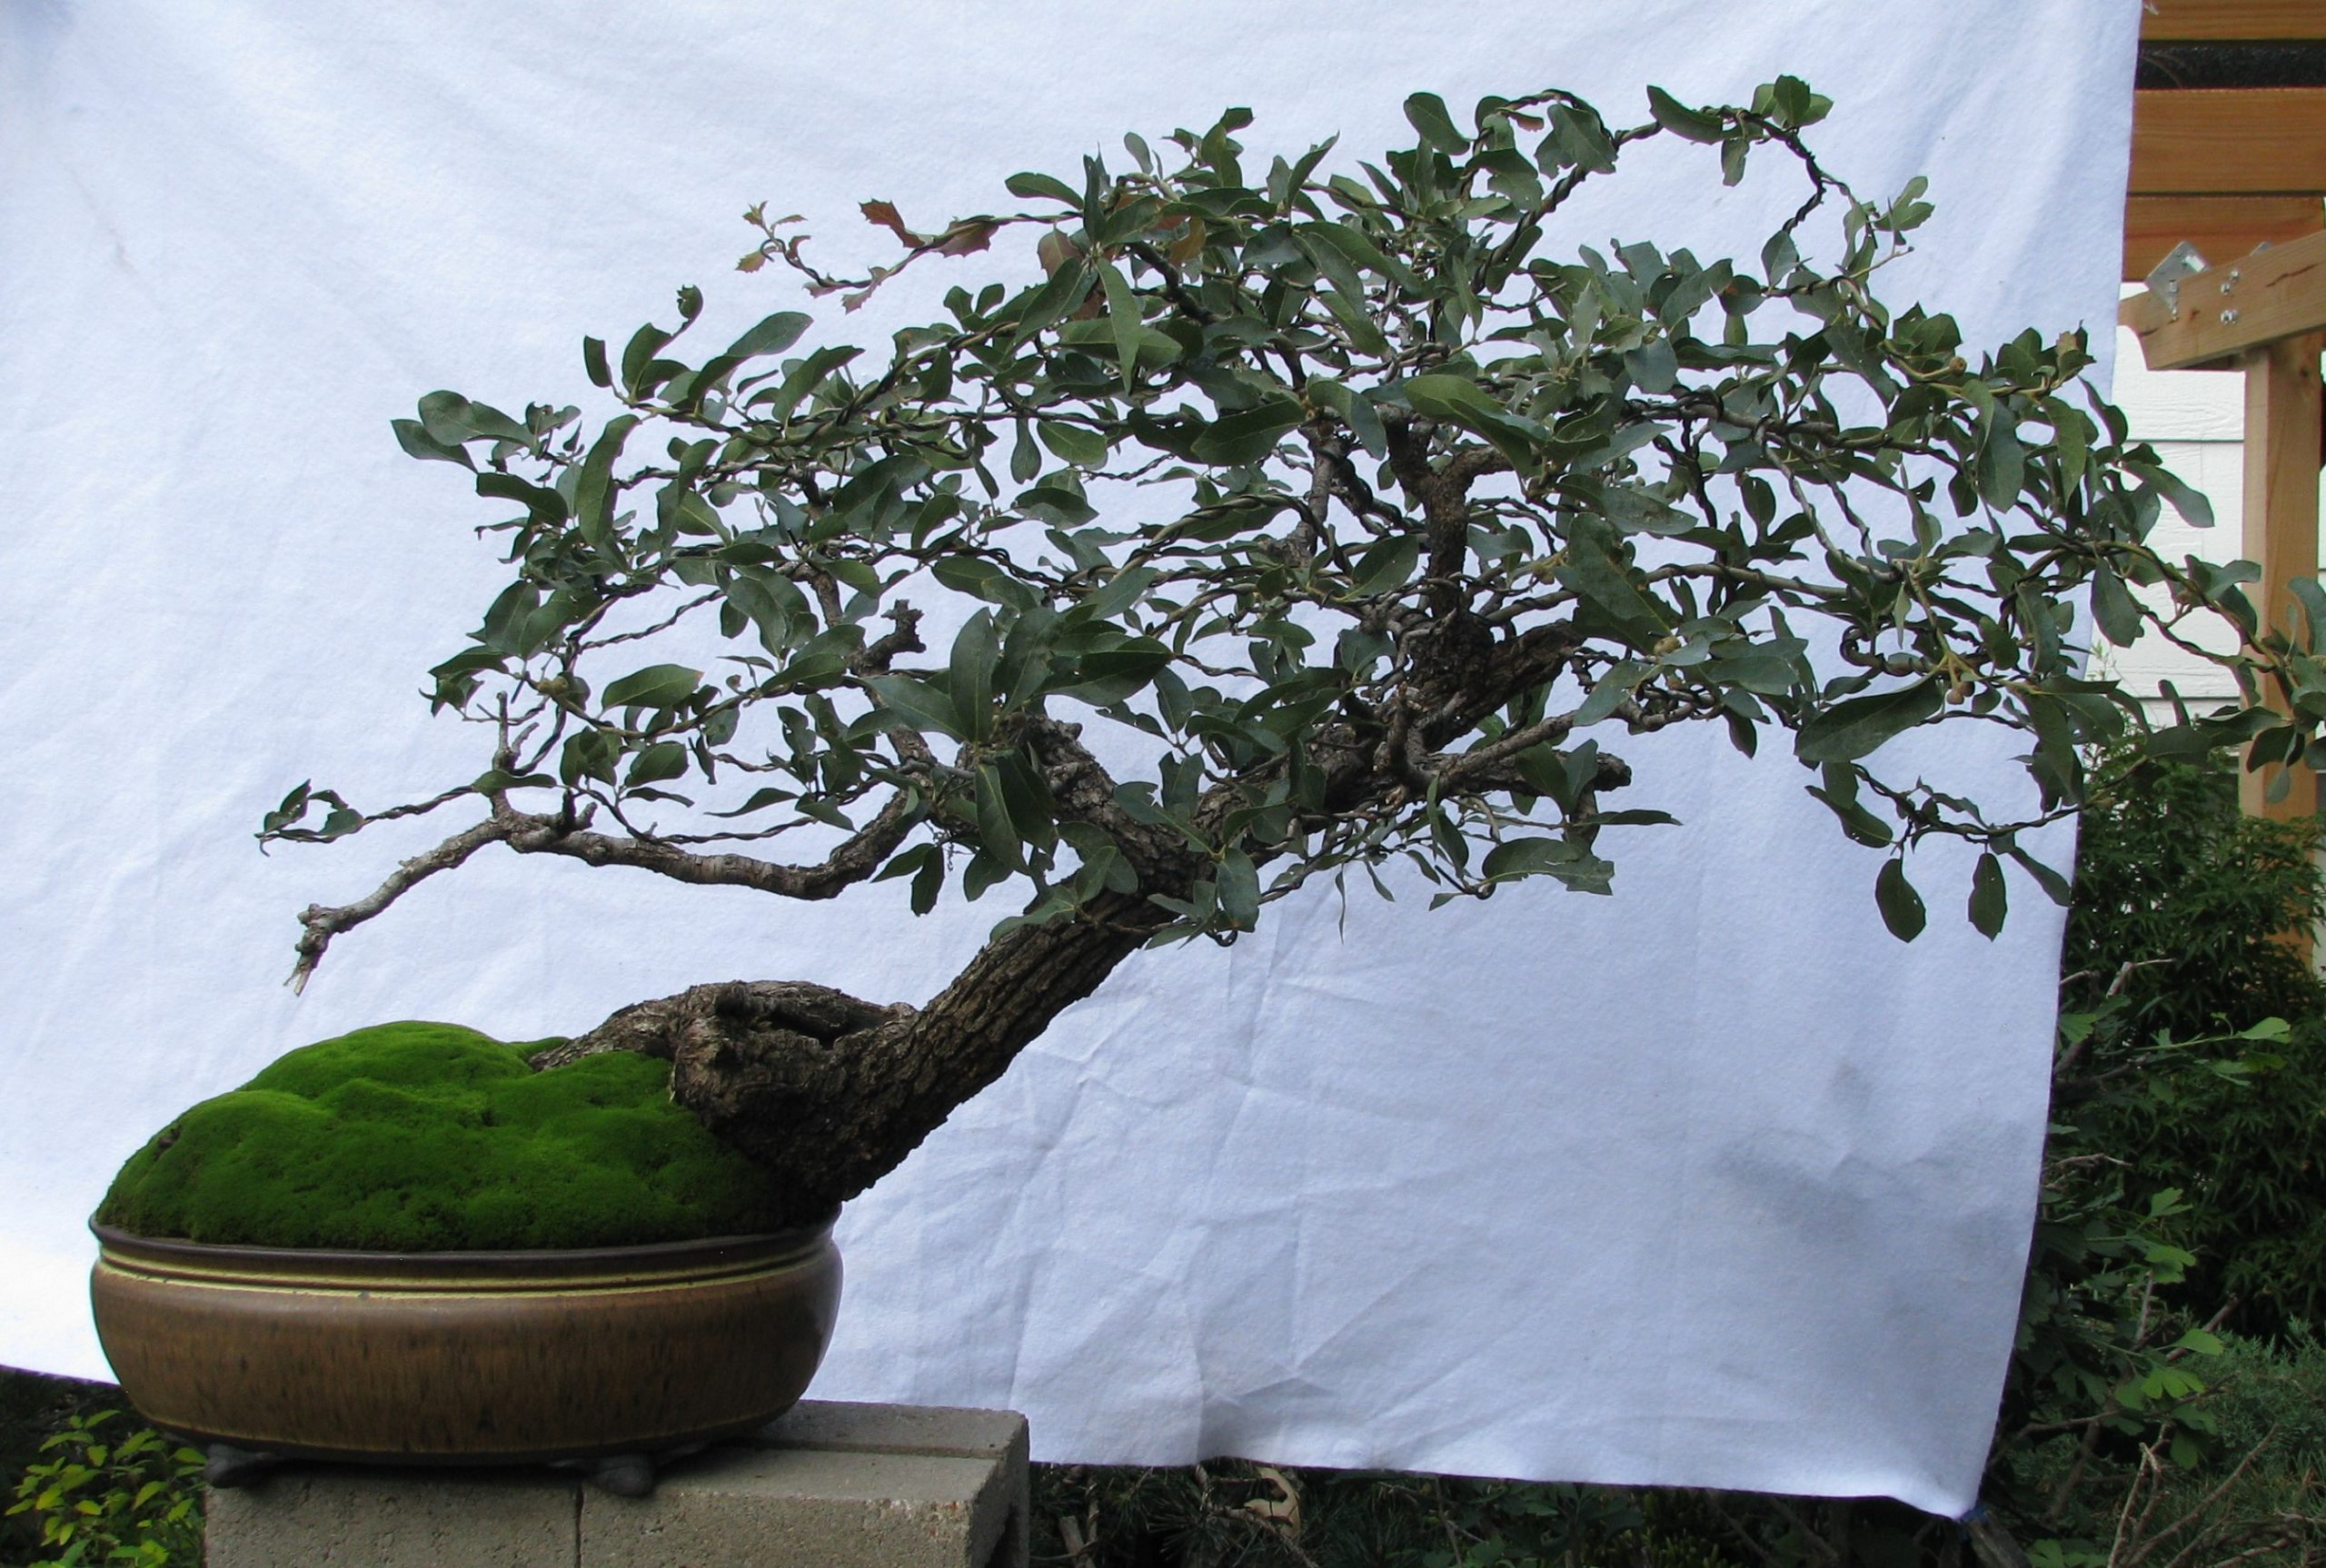 Quercus Grisea Gray Oak Bonsai Colorado Rocky Mountain Bonsai Suiseki